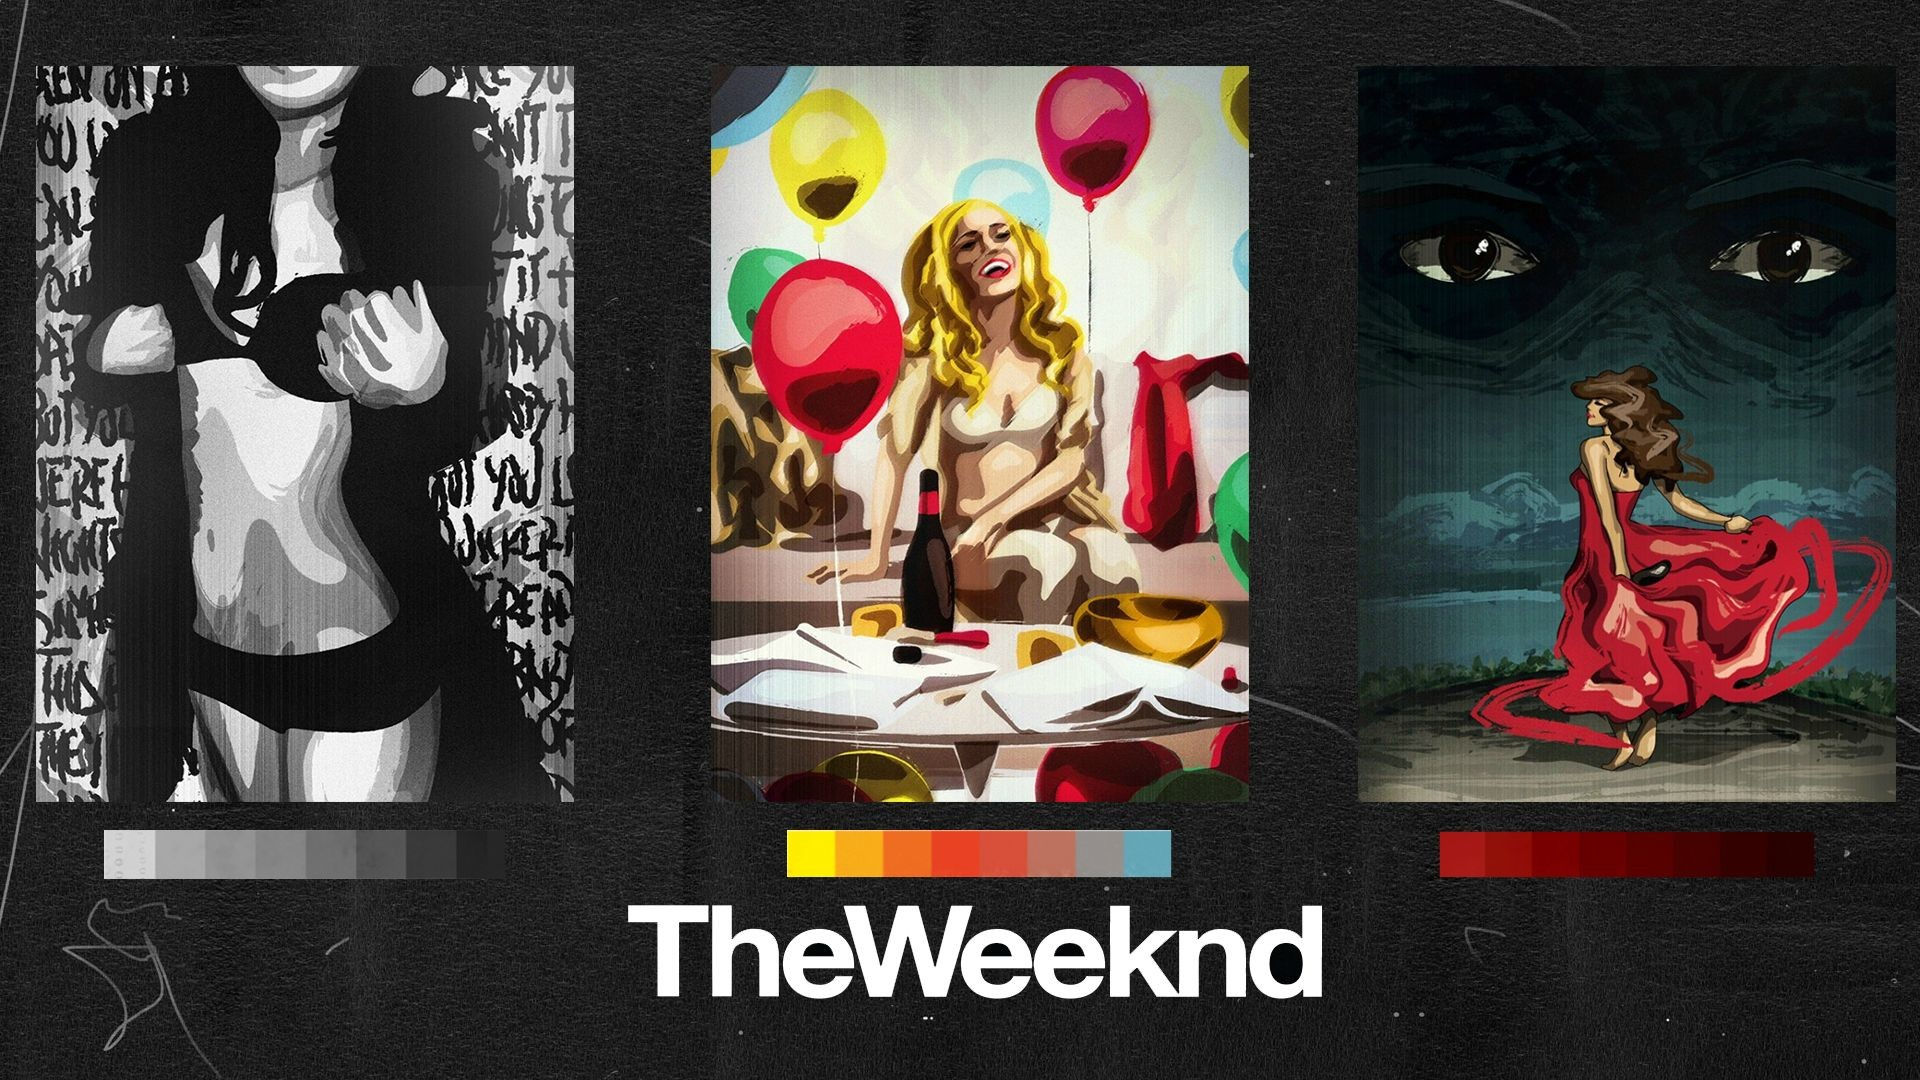 the weeknd discography download